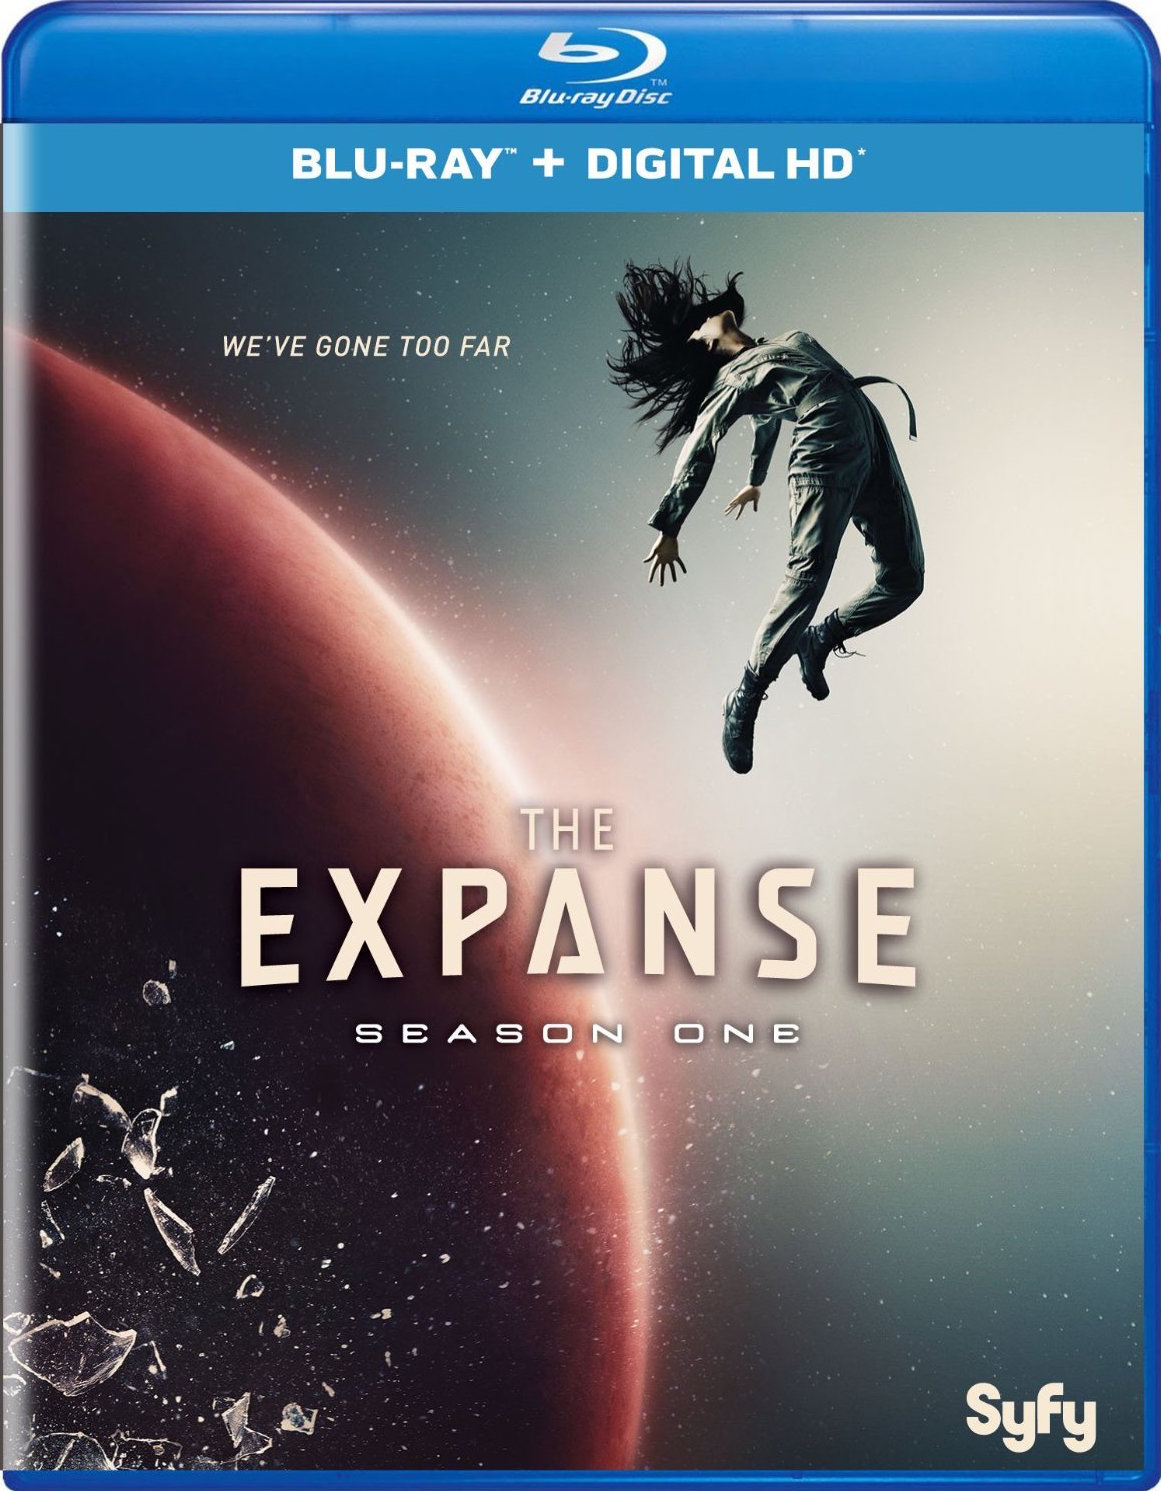 The Expanse Season One  Blu-ray Review